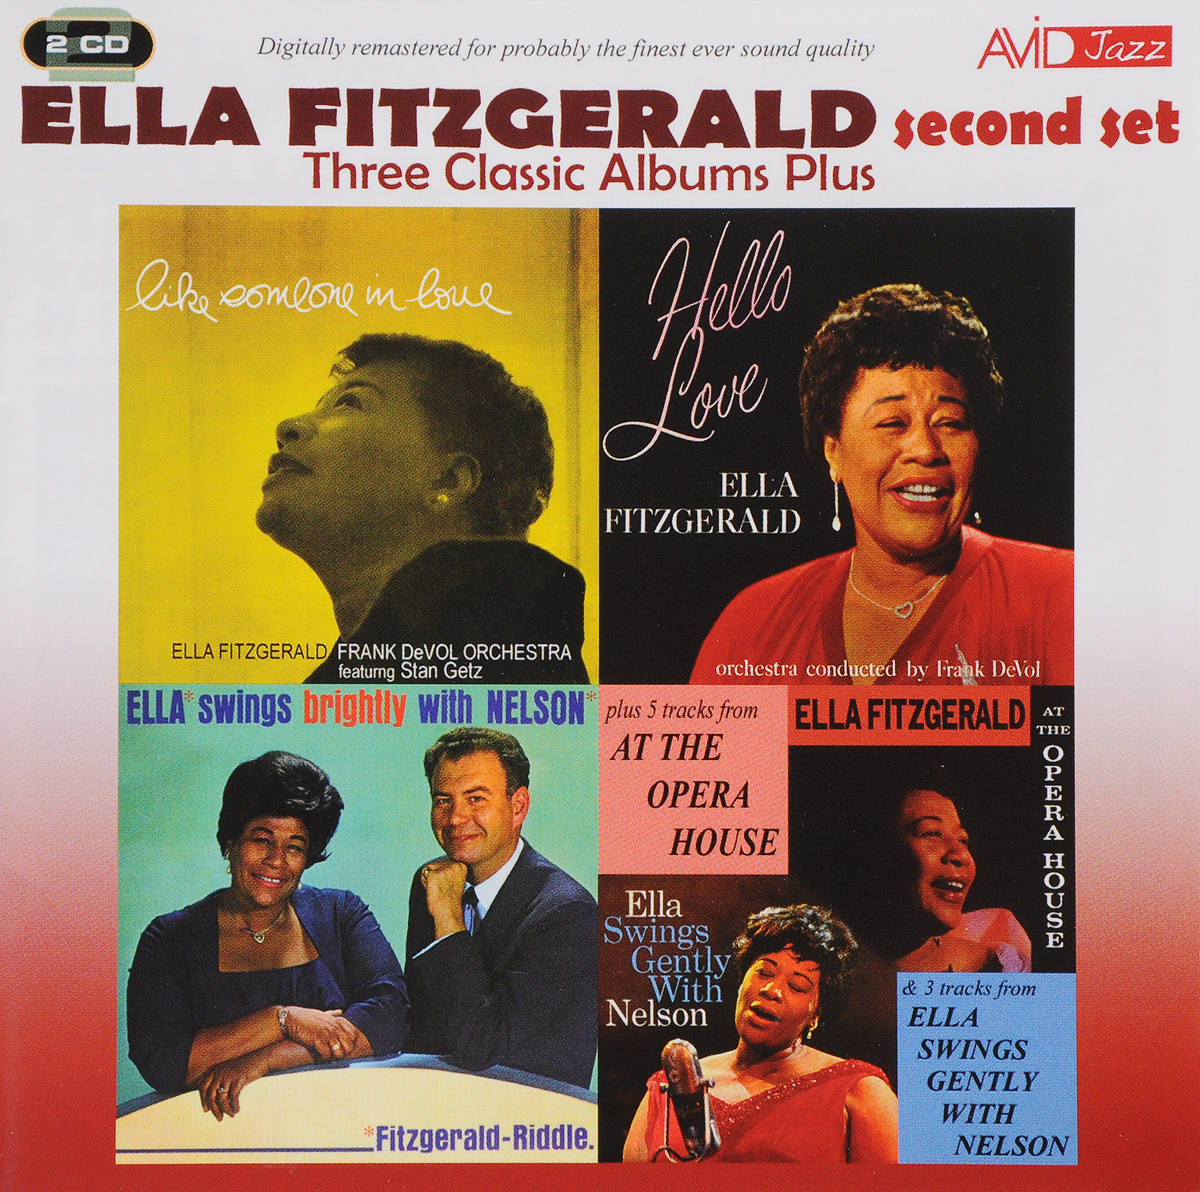 Ella Fitzgerald. Three Classic Albums Plus (Second set) (2 CD)